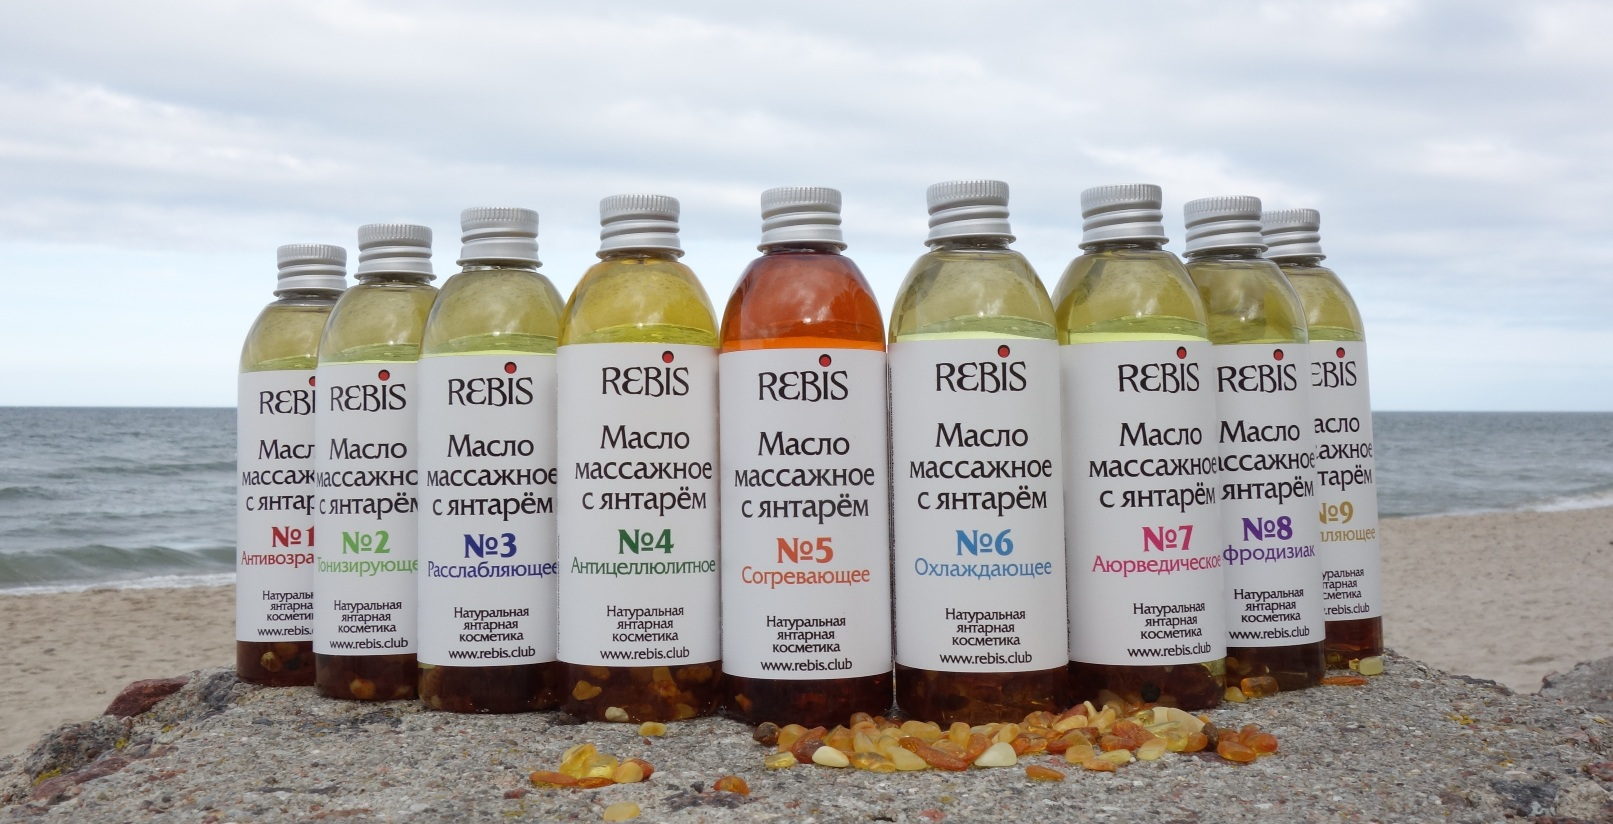 Rebis Massage Oils Containing Amber Oil and Natural Baltic Amber